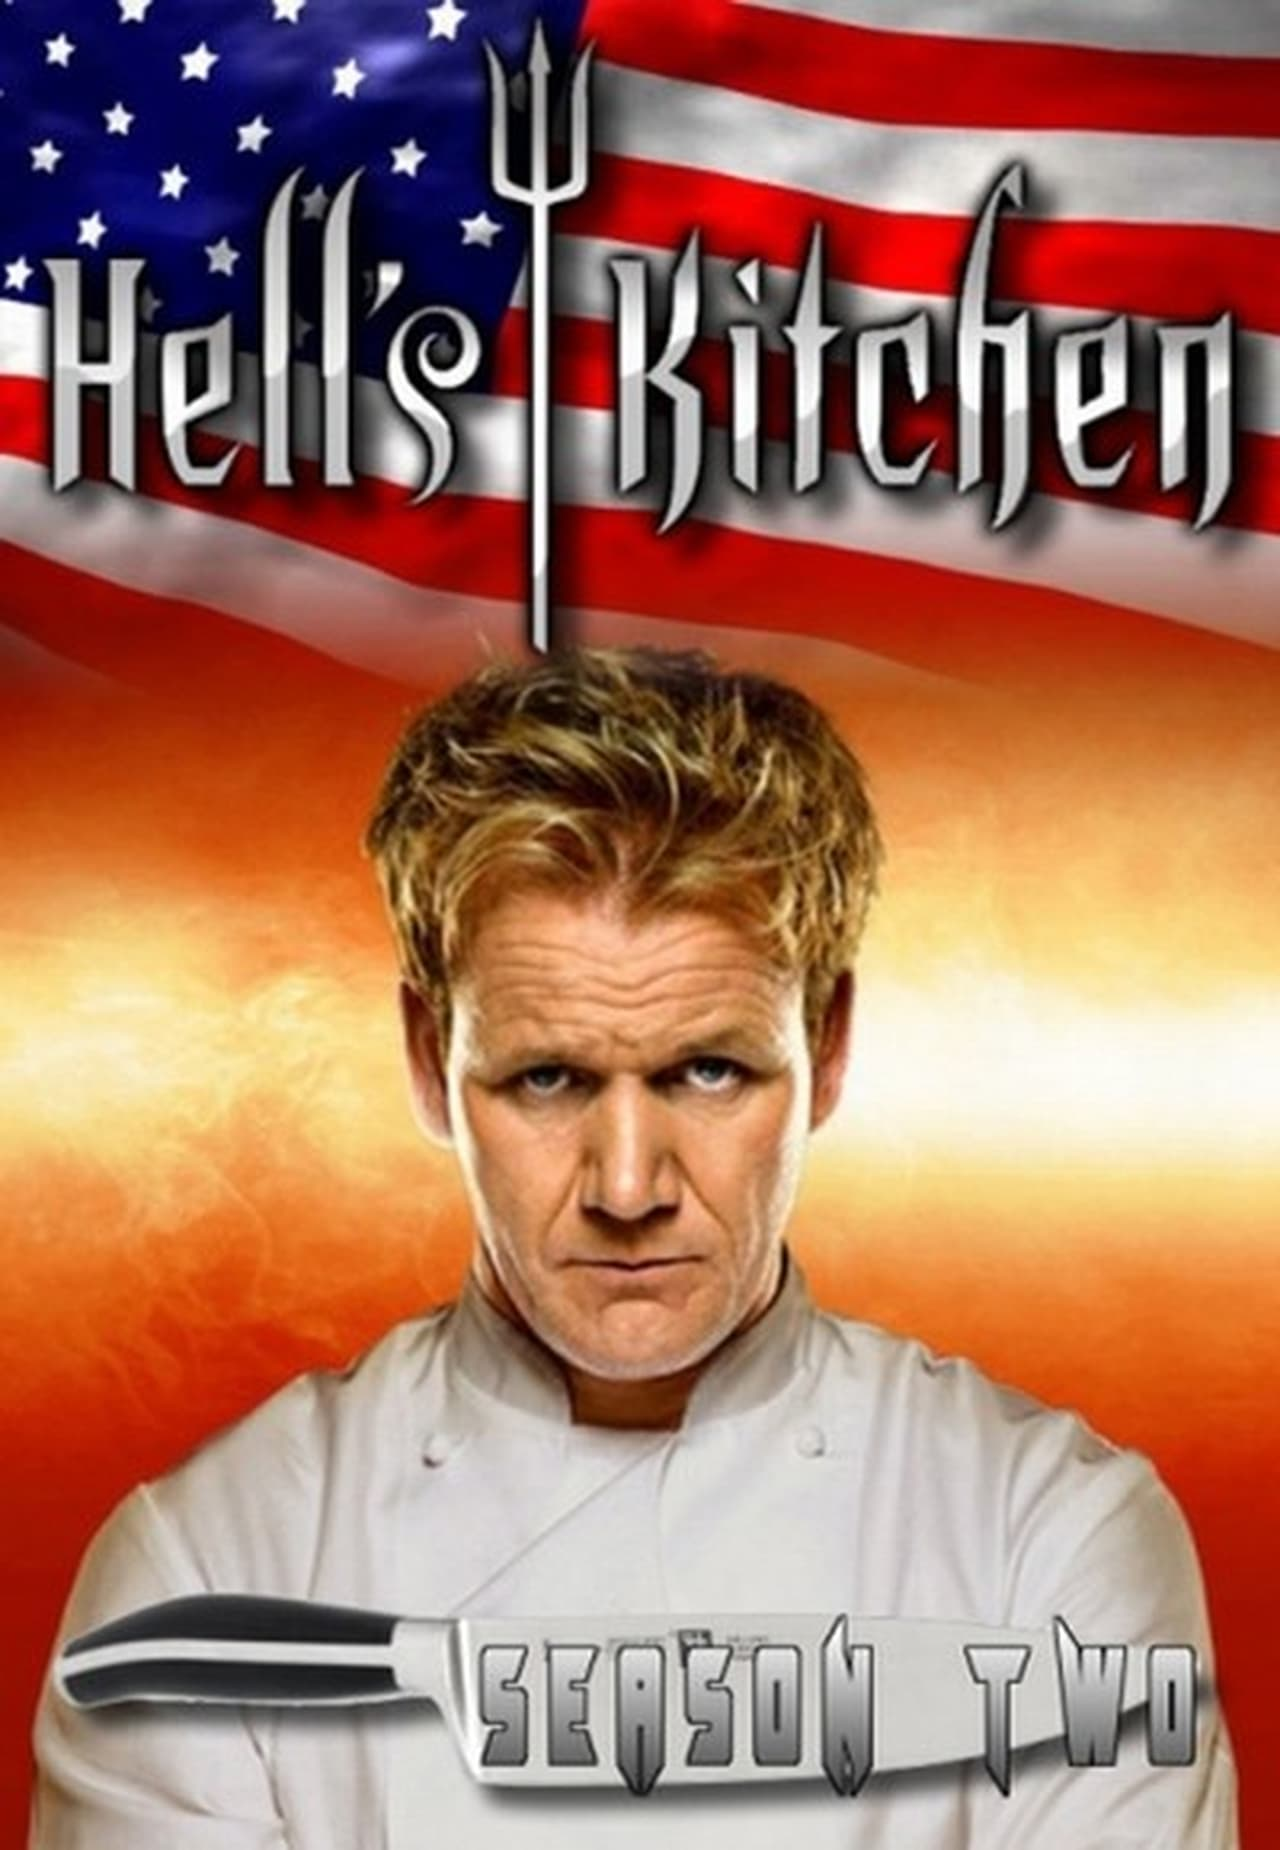 Hell's Kitchen Season 2 (2006) putlockers cafe